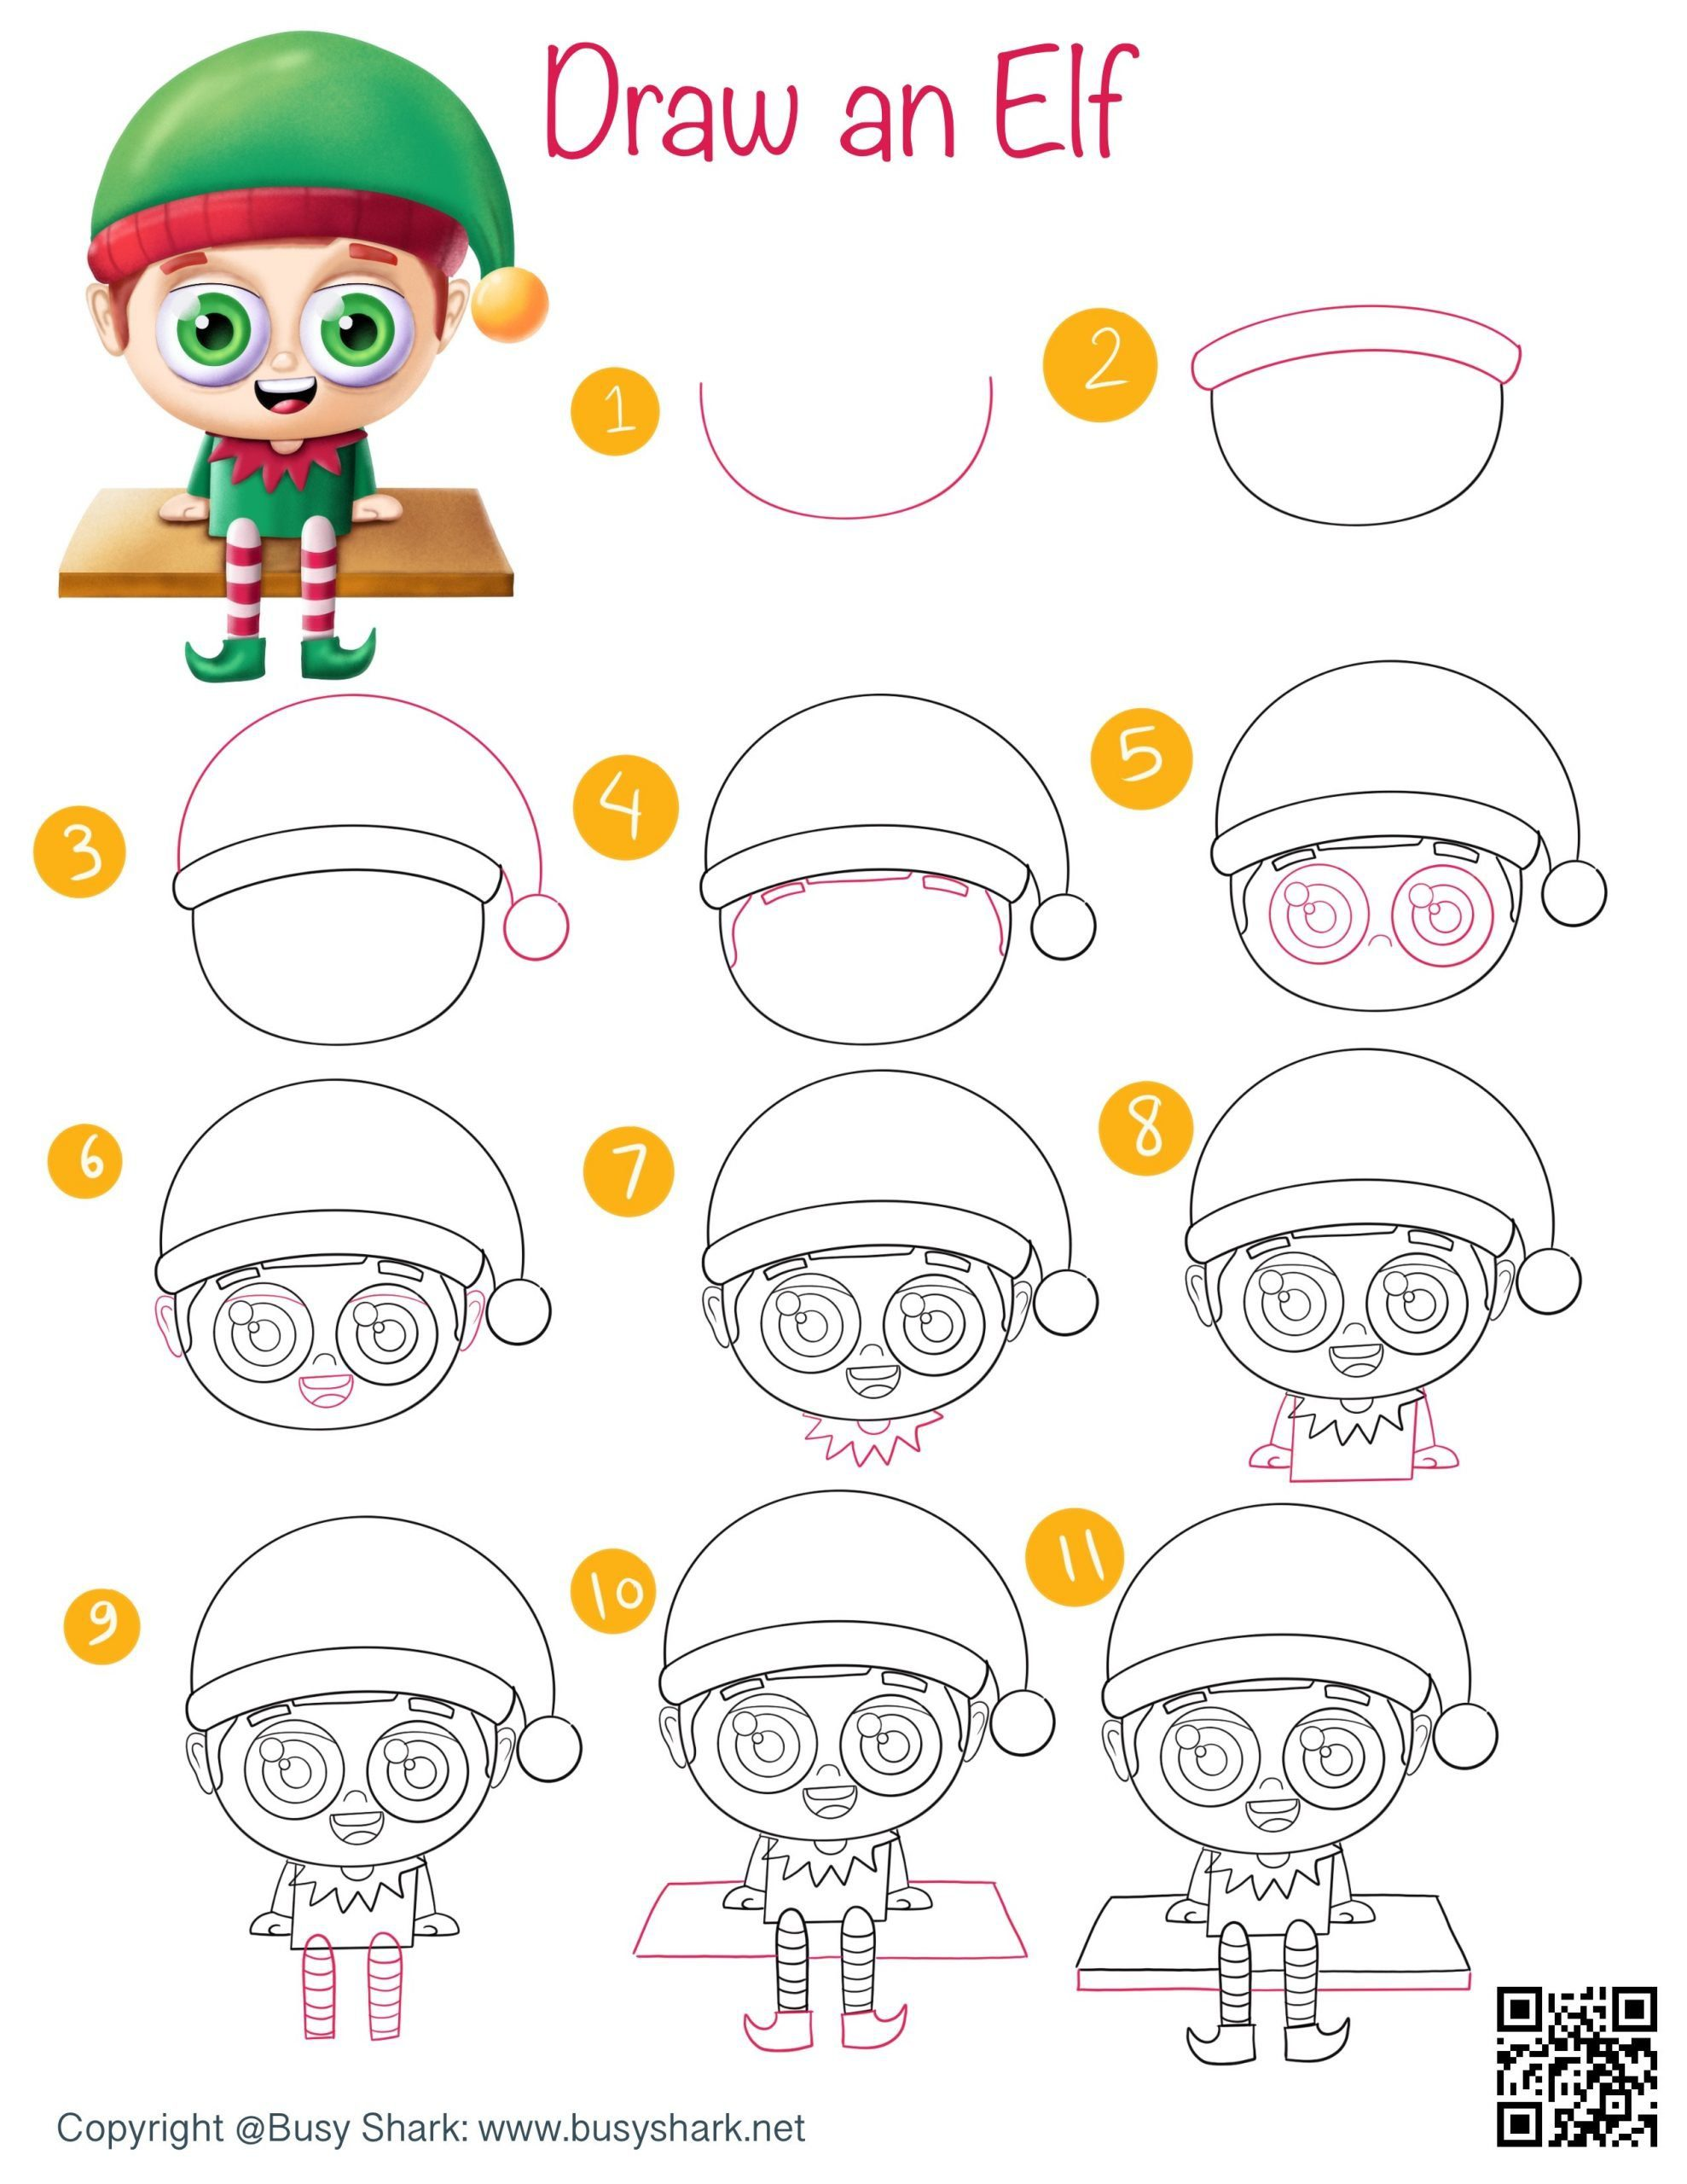 how to draw an elf on a shelf step by step tutorial